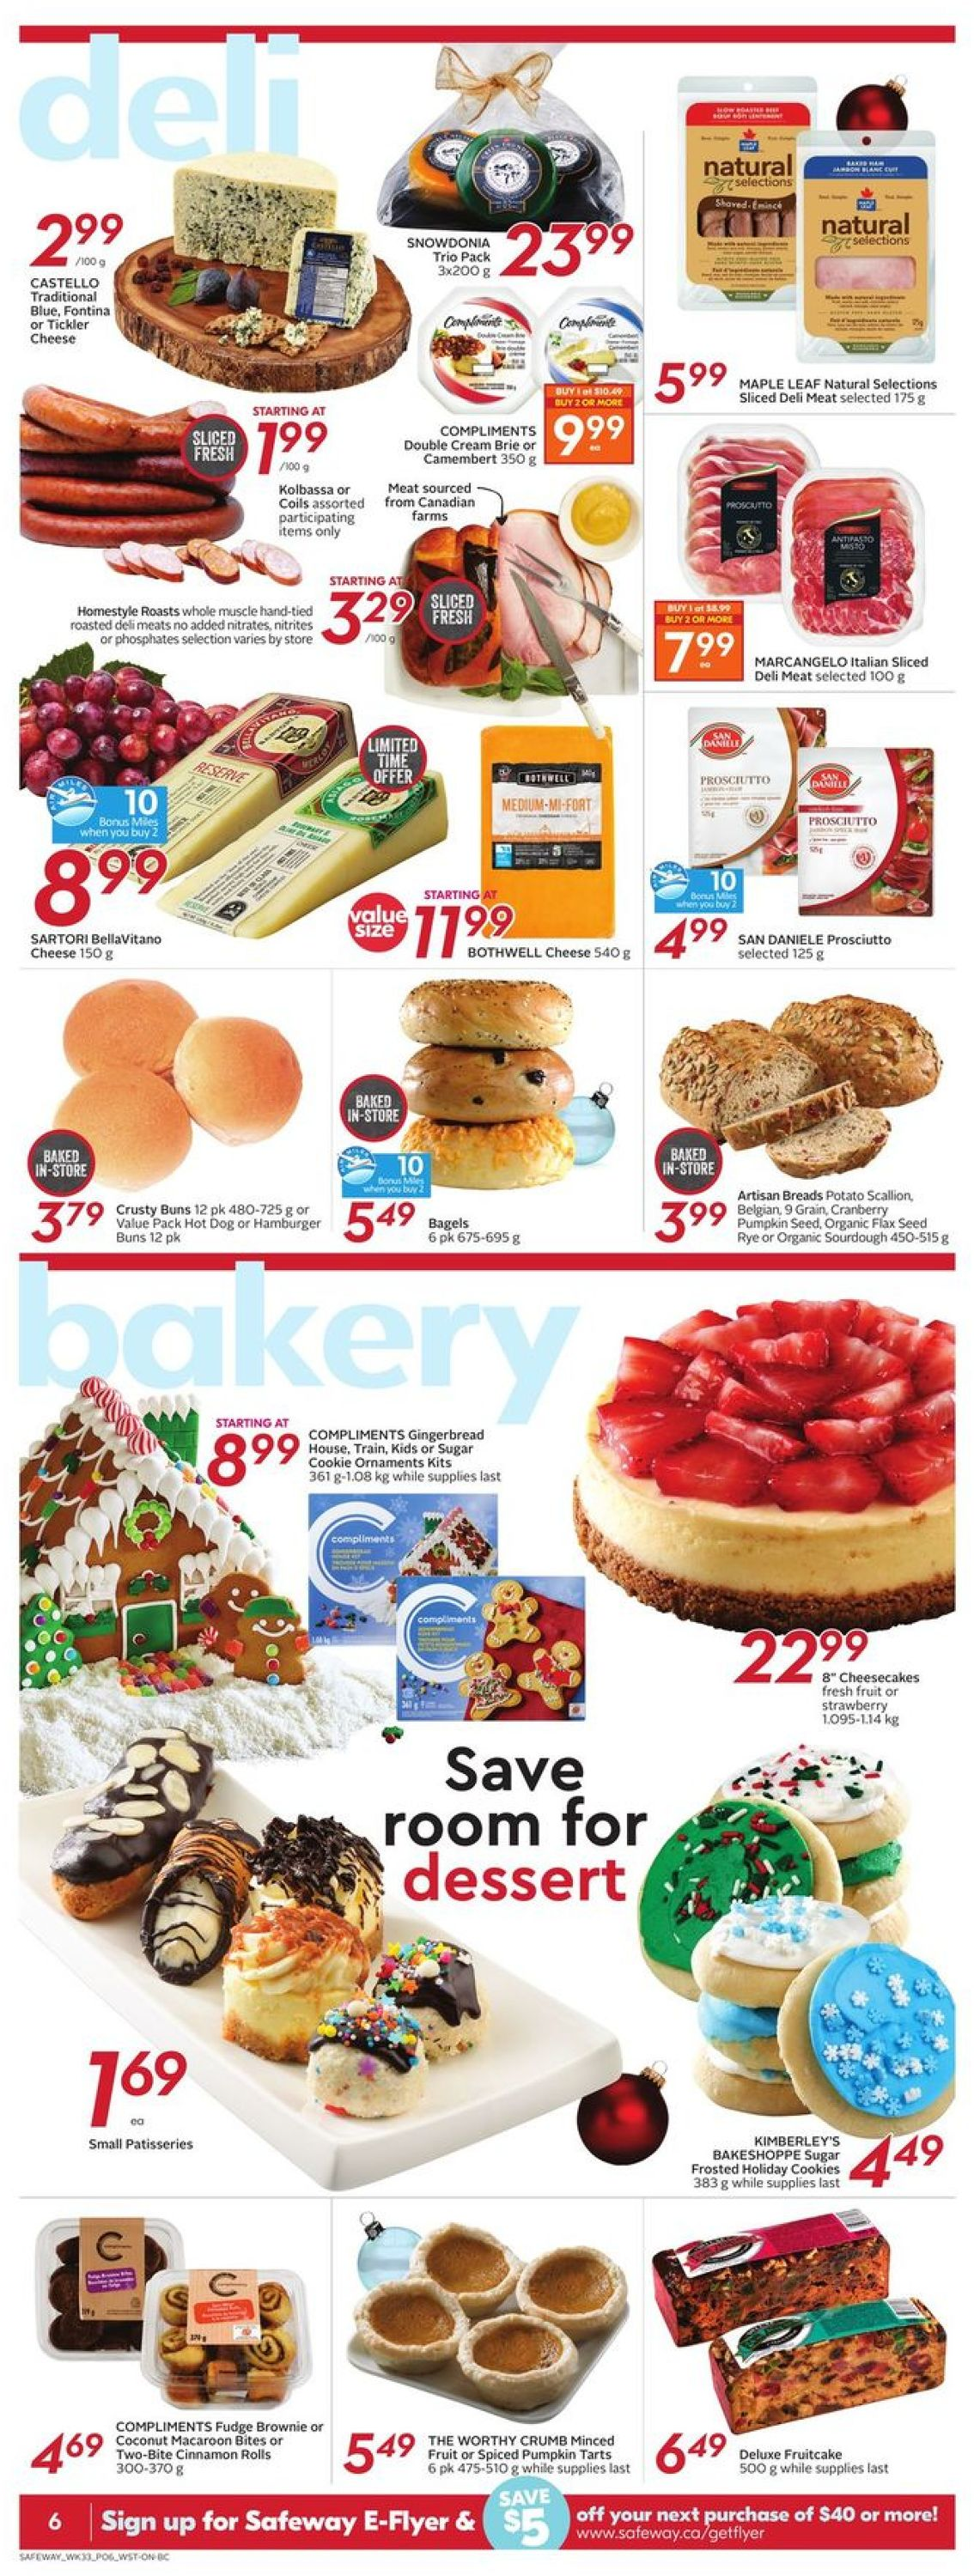 Safeway - Holiday 2020 Flyer - 12/10-12/16/2020 (Page 9)